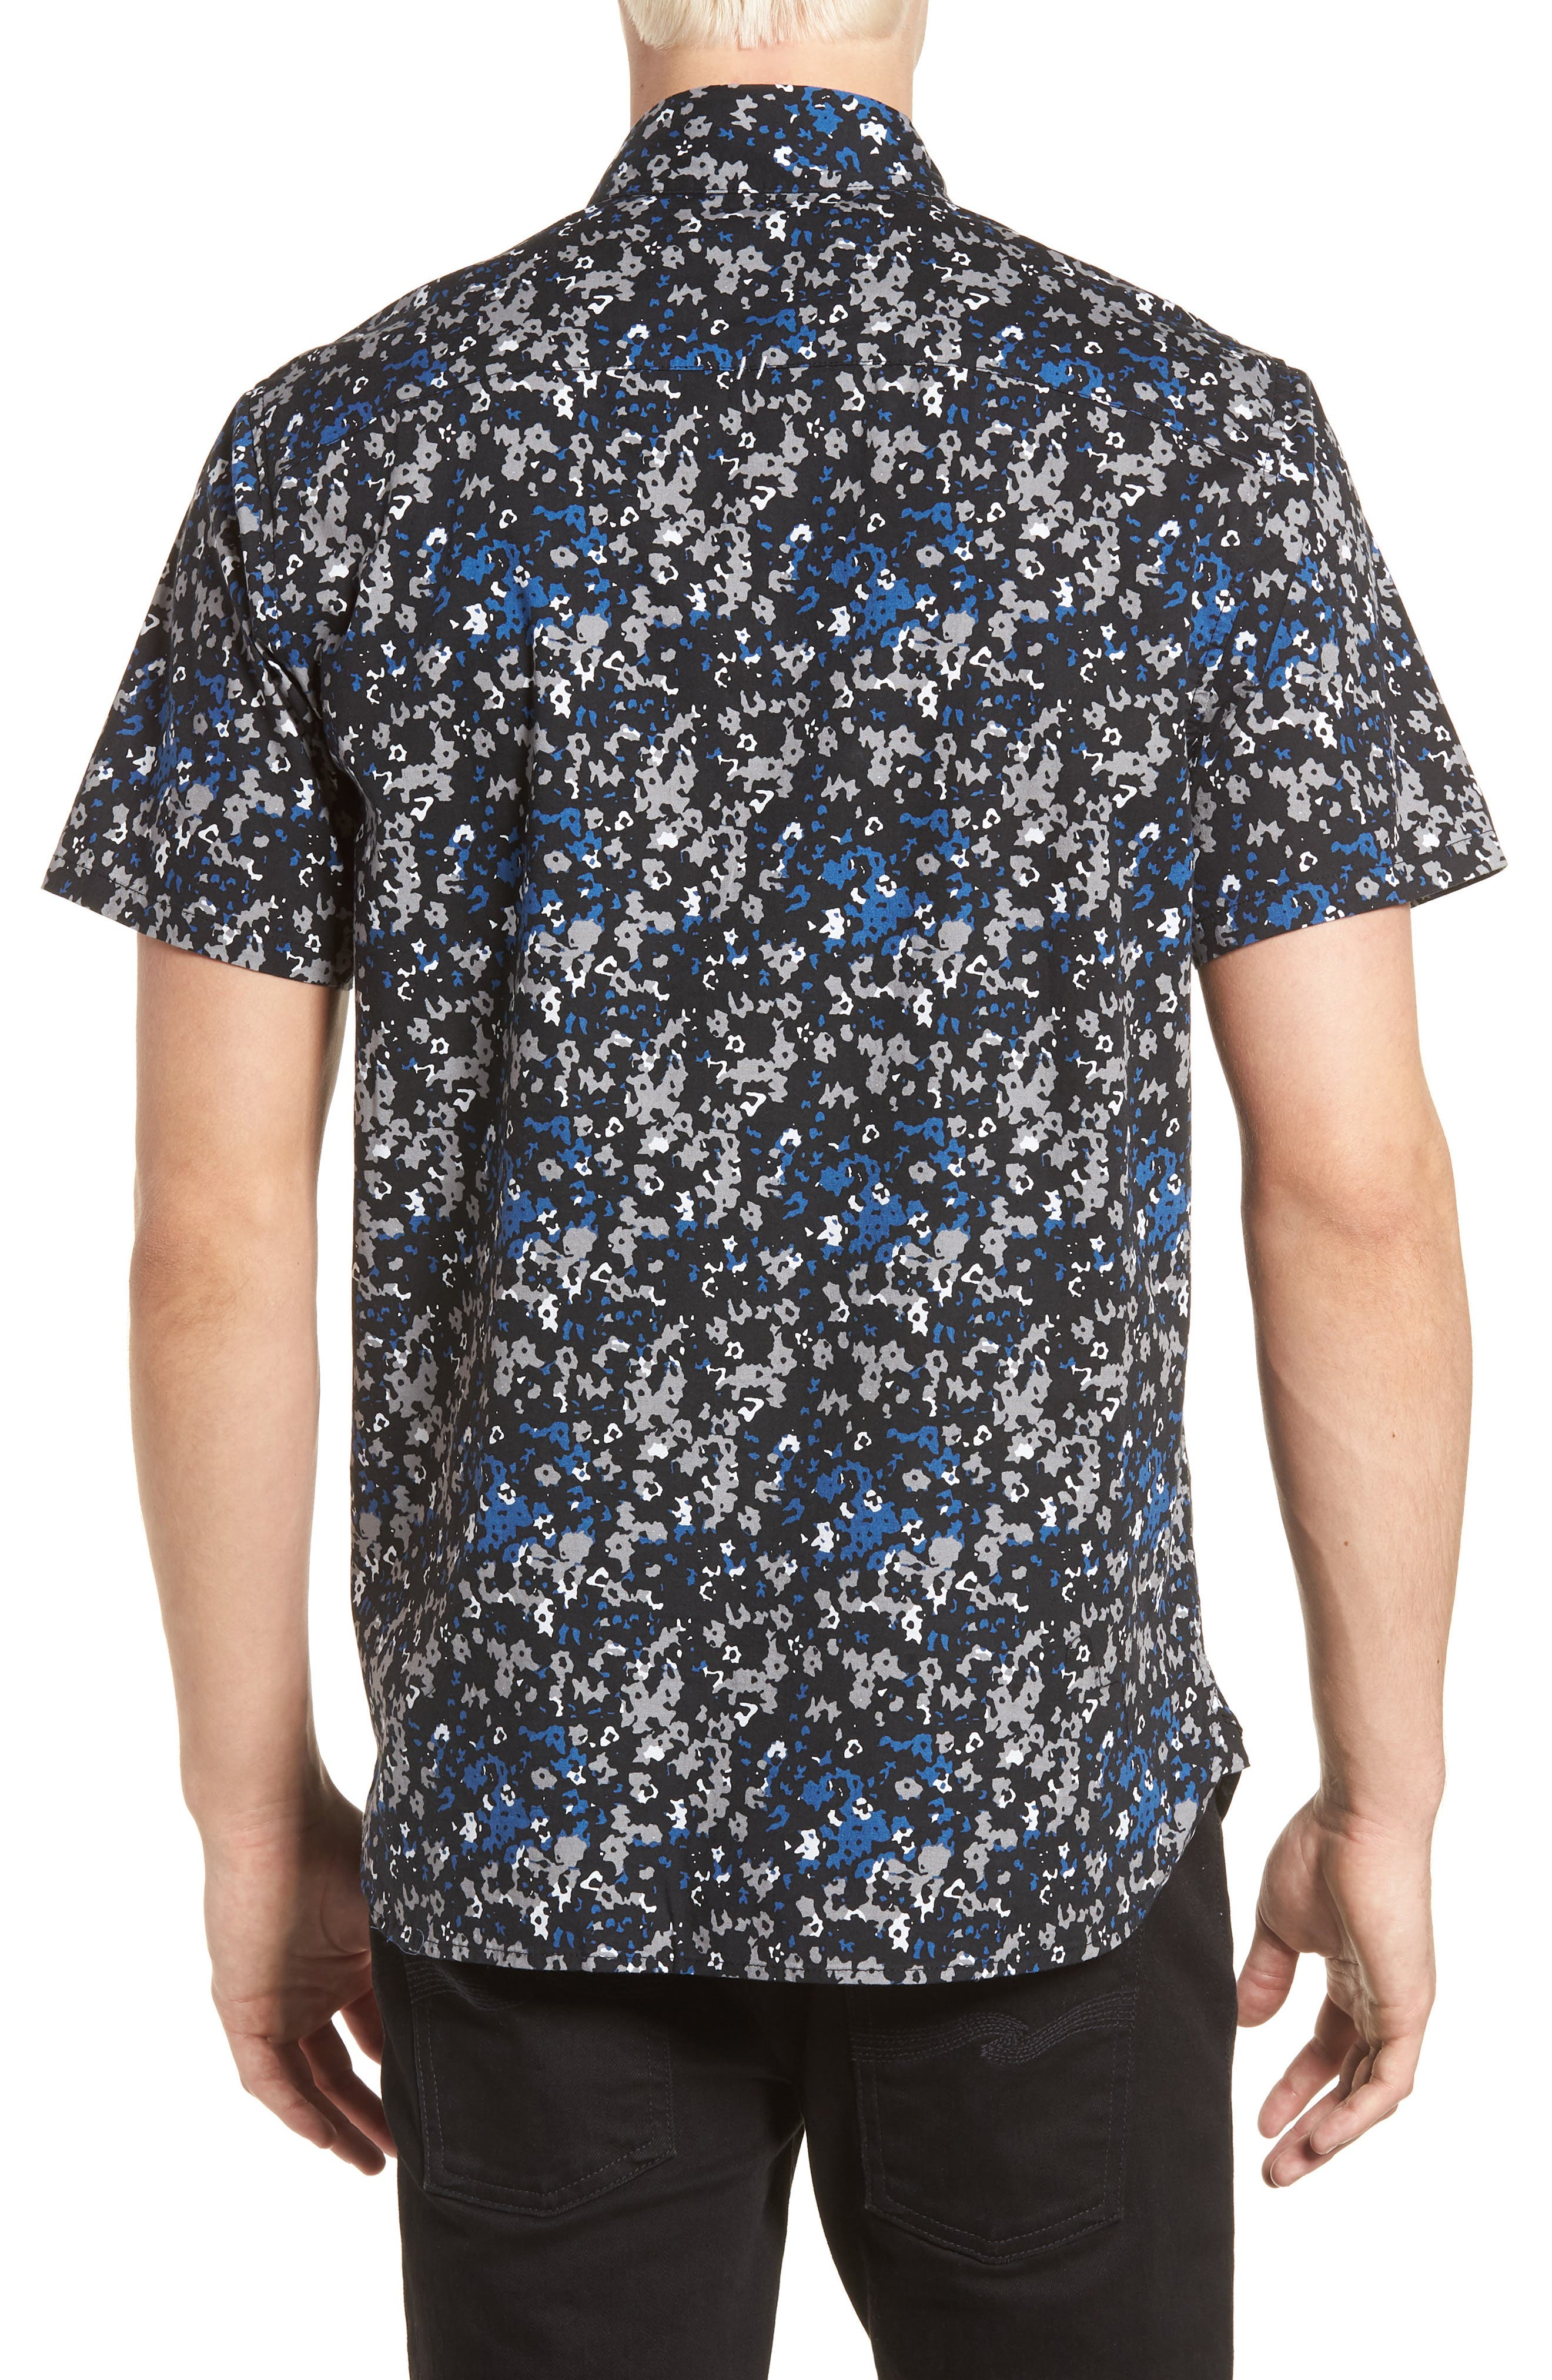 Fowler Woven Shirt,                             Alternate thumbnail 3, color,                             Black Micro Floral